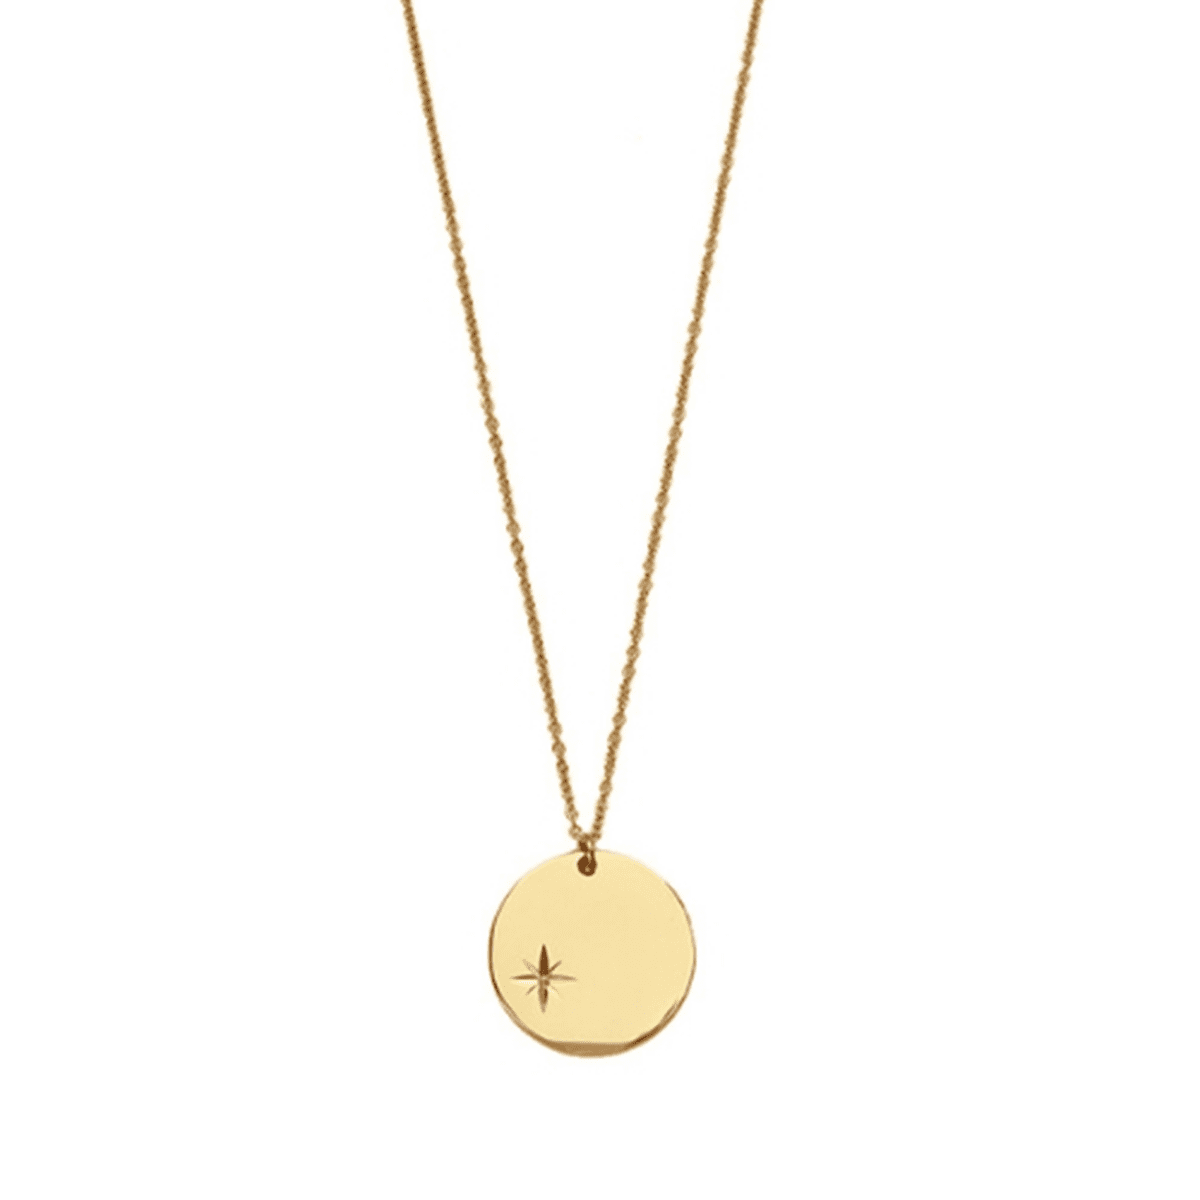 18k Gold-Plated Pendant With Small Polar Star Medal - Tanzire Store